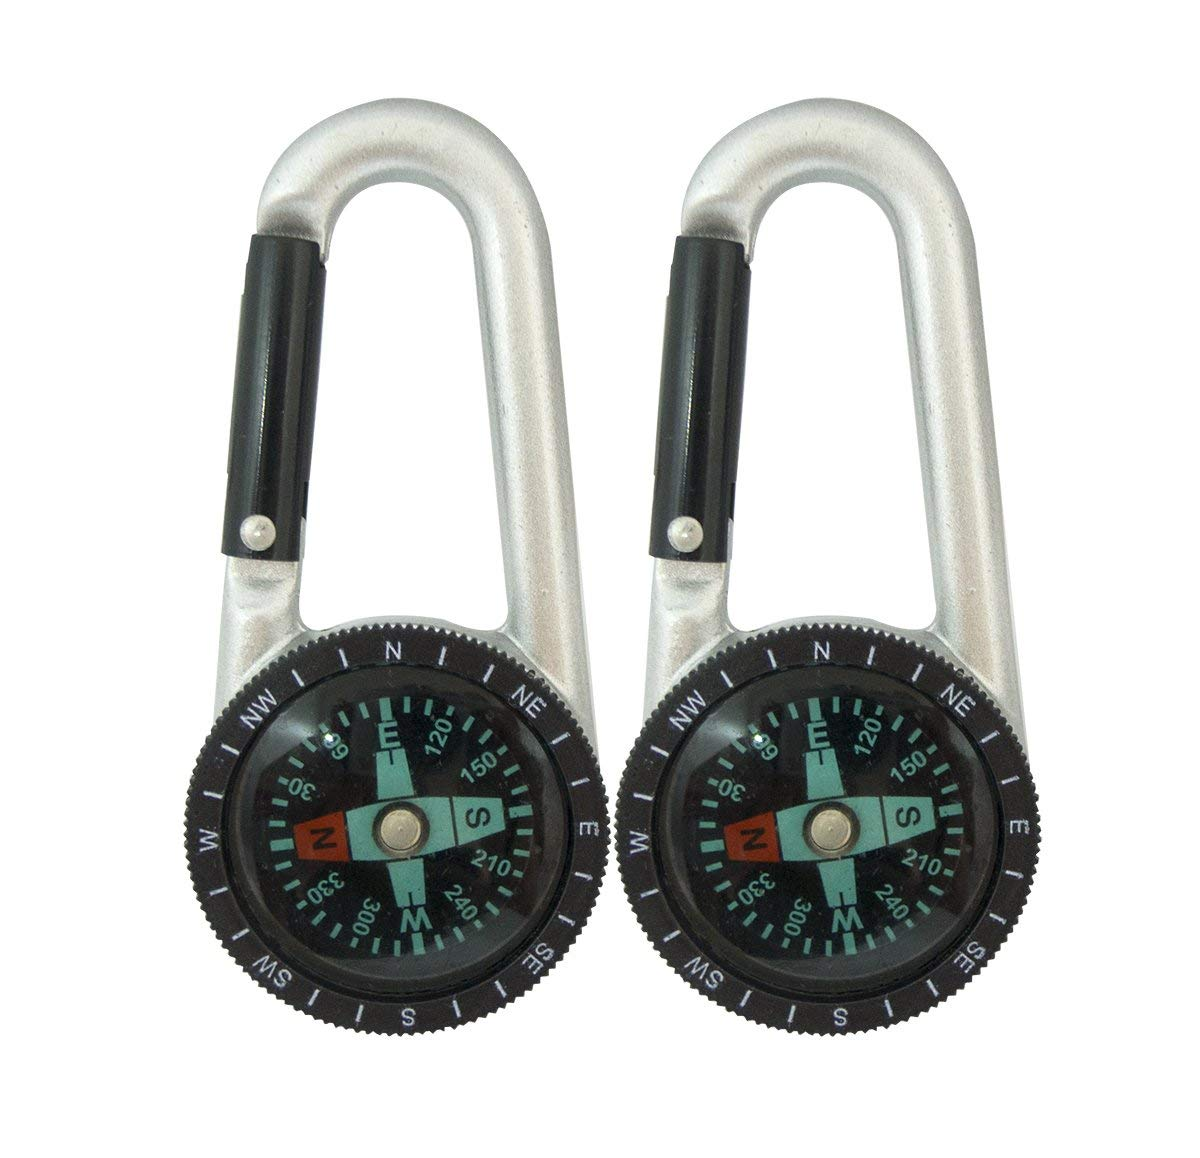 Compass Keychain, Faocean 2 PCS Small Liquid Filled Compass Keychain Carabiner Clip on with Snap Hook and Plastic Scale, Black Silver